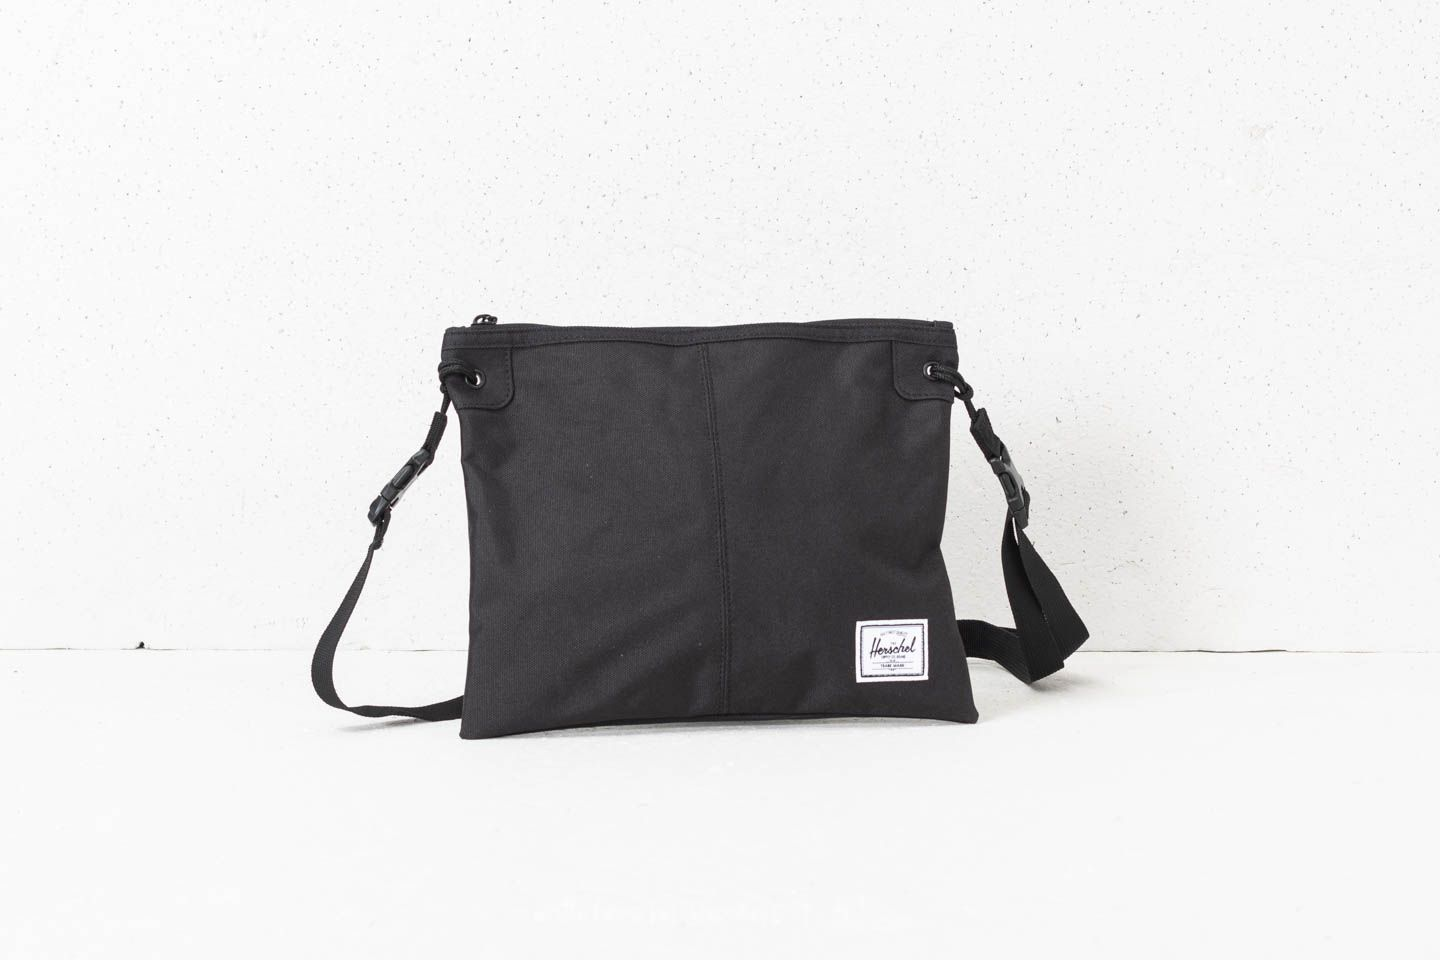 cb8ccfb28948 Herschel Supply Co. Alder Crossbody Black | Footshop